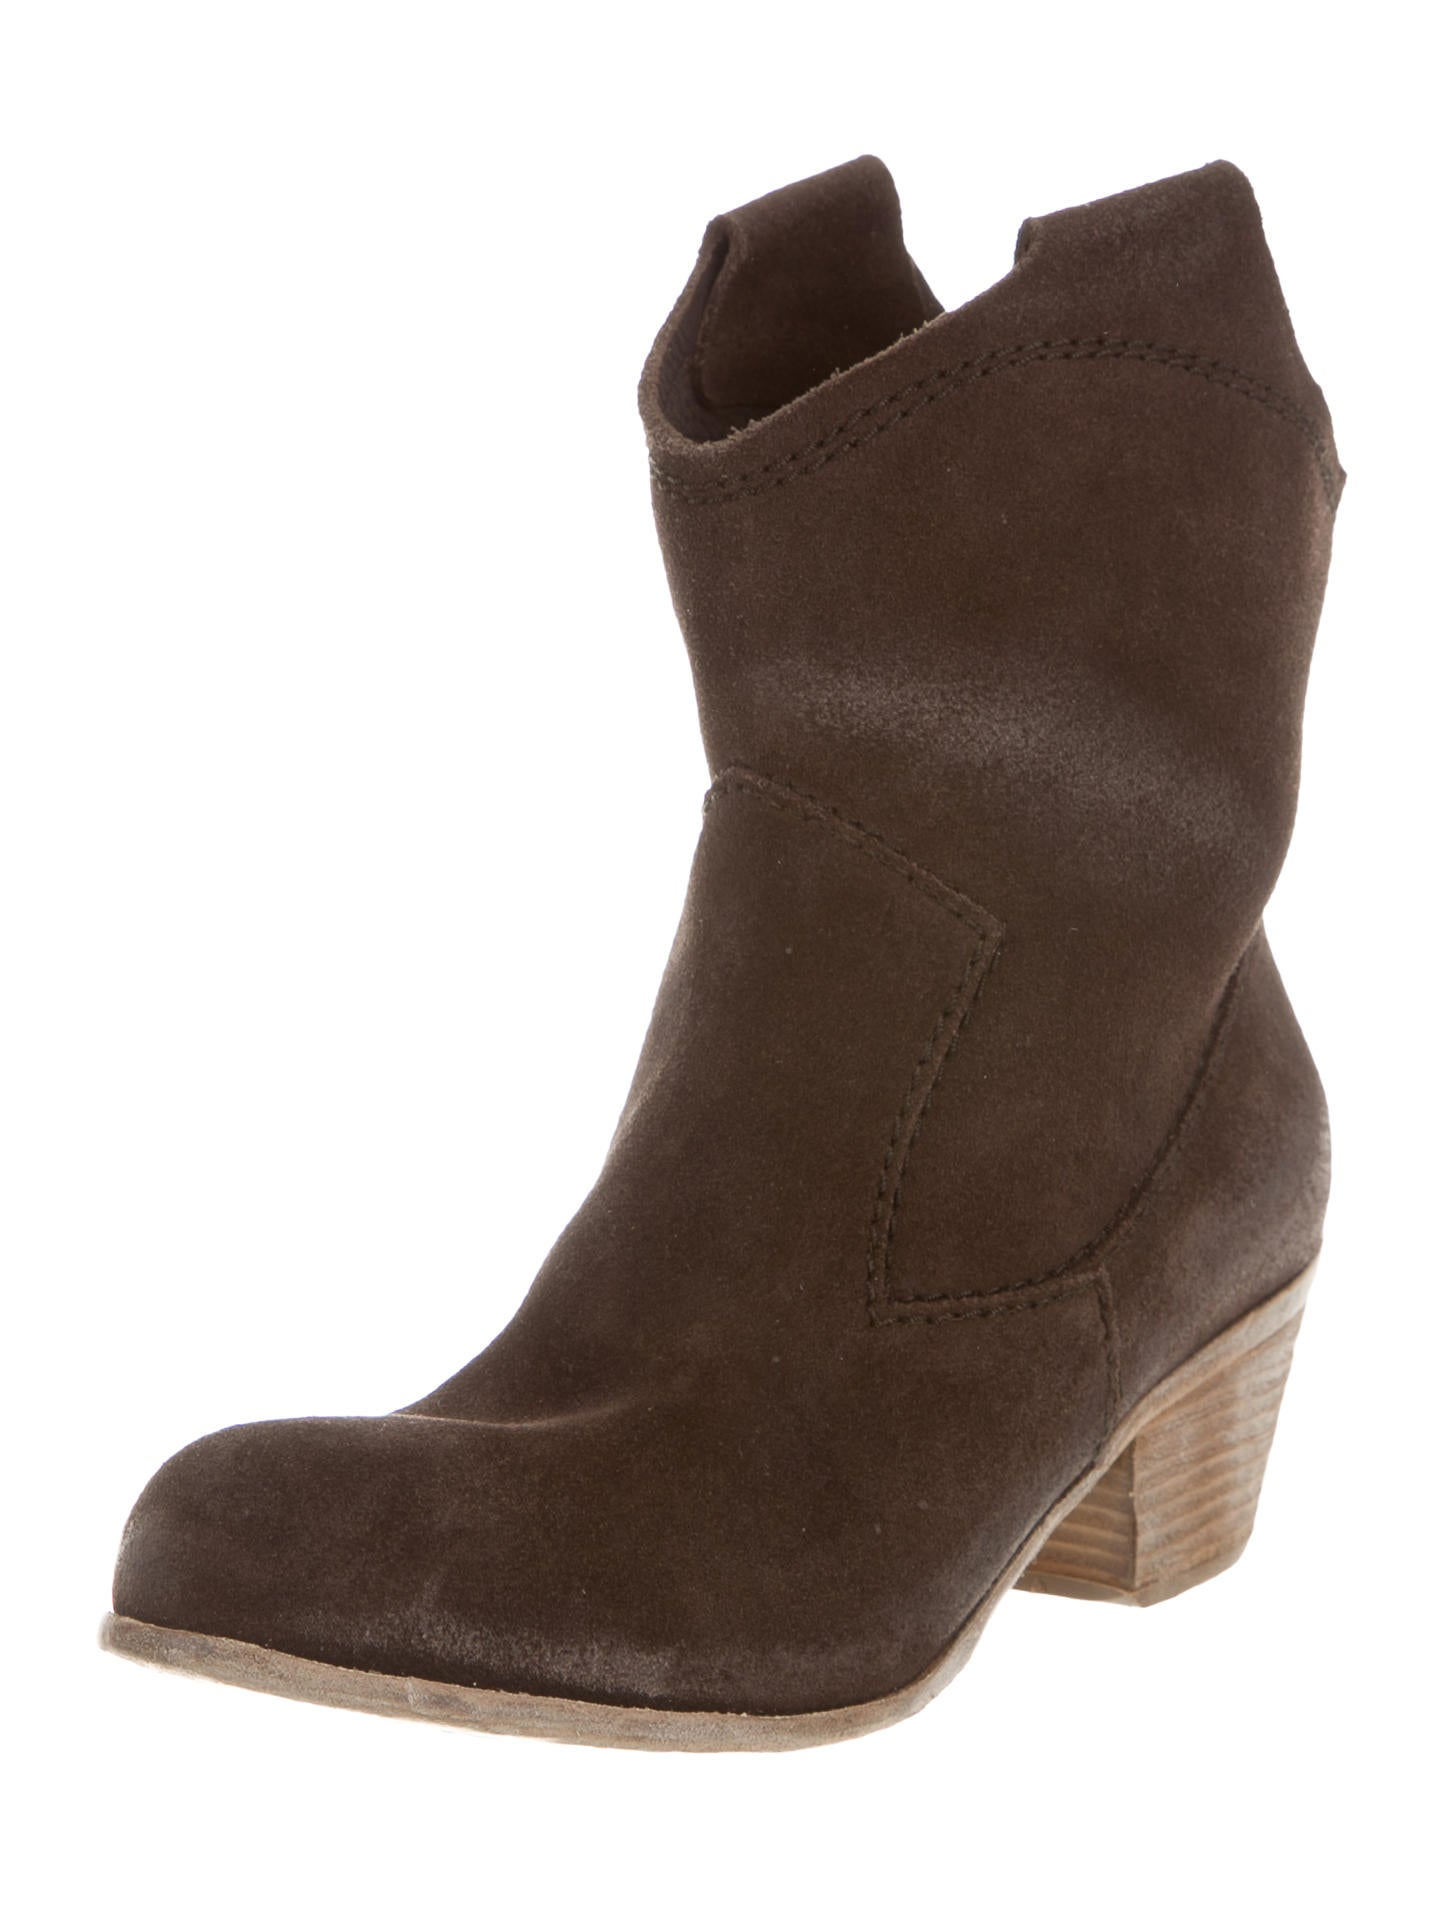 pedro garcia montana suede ankle boots shoes ped22530